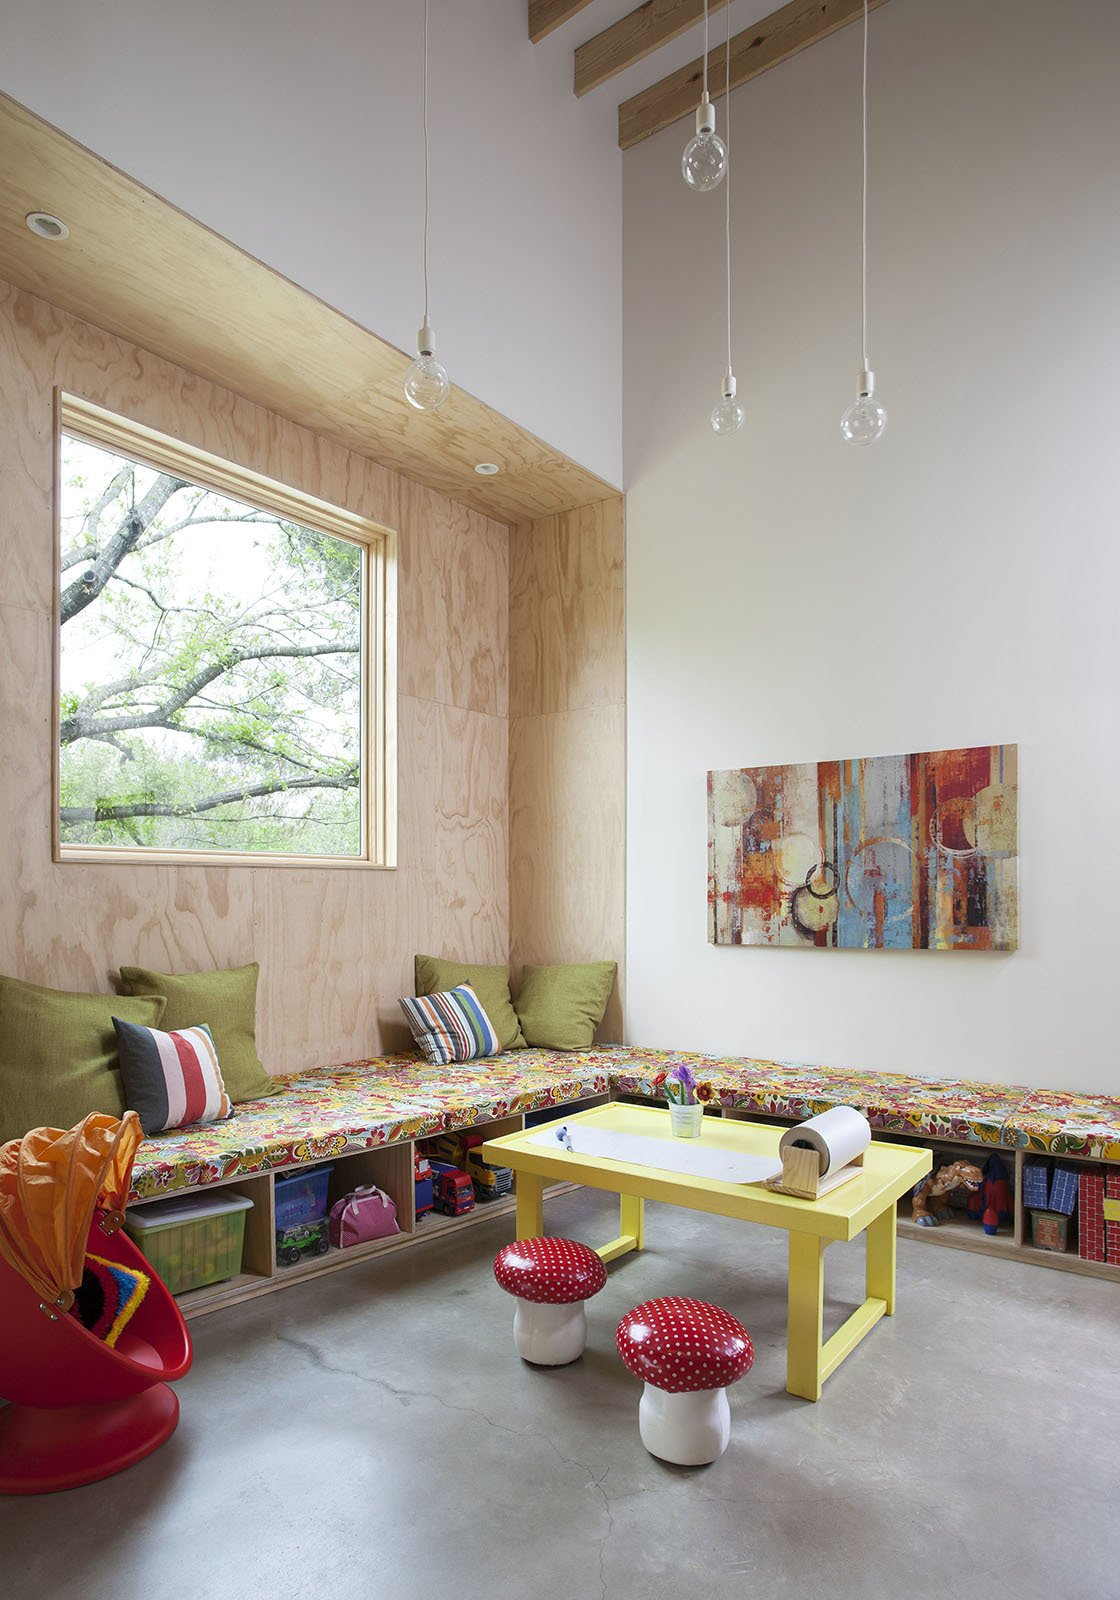 """In the playroom, built-in casework offers storage for toys. The yellow table was custom-built by the Kristin's father. The clear pendant lights are by Muuto. The """"toy zone"""" is adjacent to the kitchen so that Lowell and Kristin can prepare meals and keep an eye on their yound children, aged three and five. """"The residents wanted as little freestanding furniture as possible,"""" Guess says. 'We did a lot of benches, which are made out of plywood so they're fairly inexpensive.""""  127+ Inspiring Interior Ideas by Dwell from Inviting Kitchen Built on a Tight Budget"""